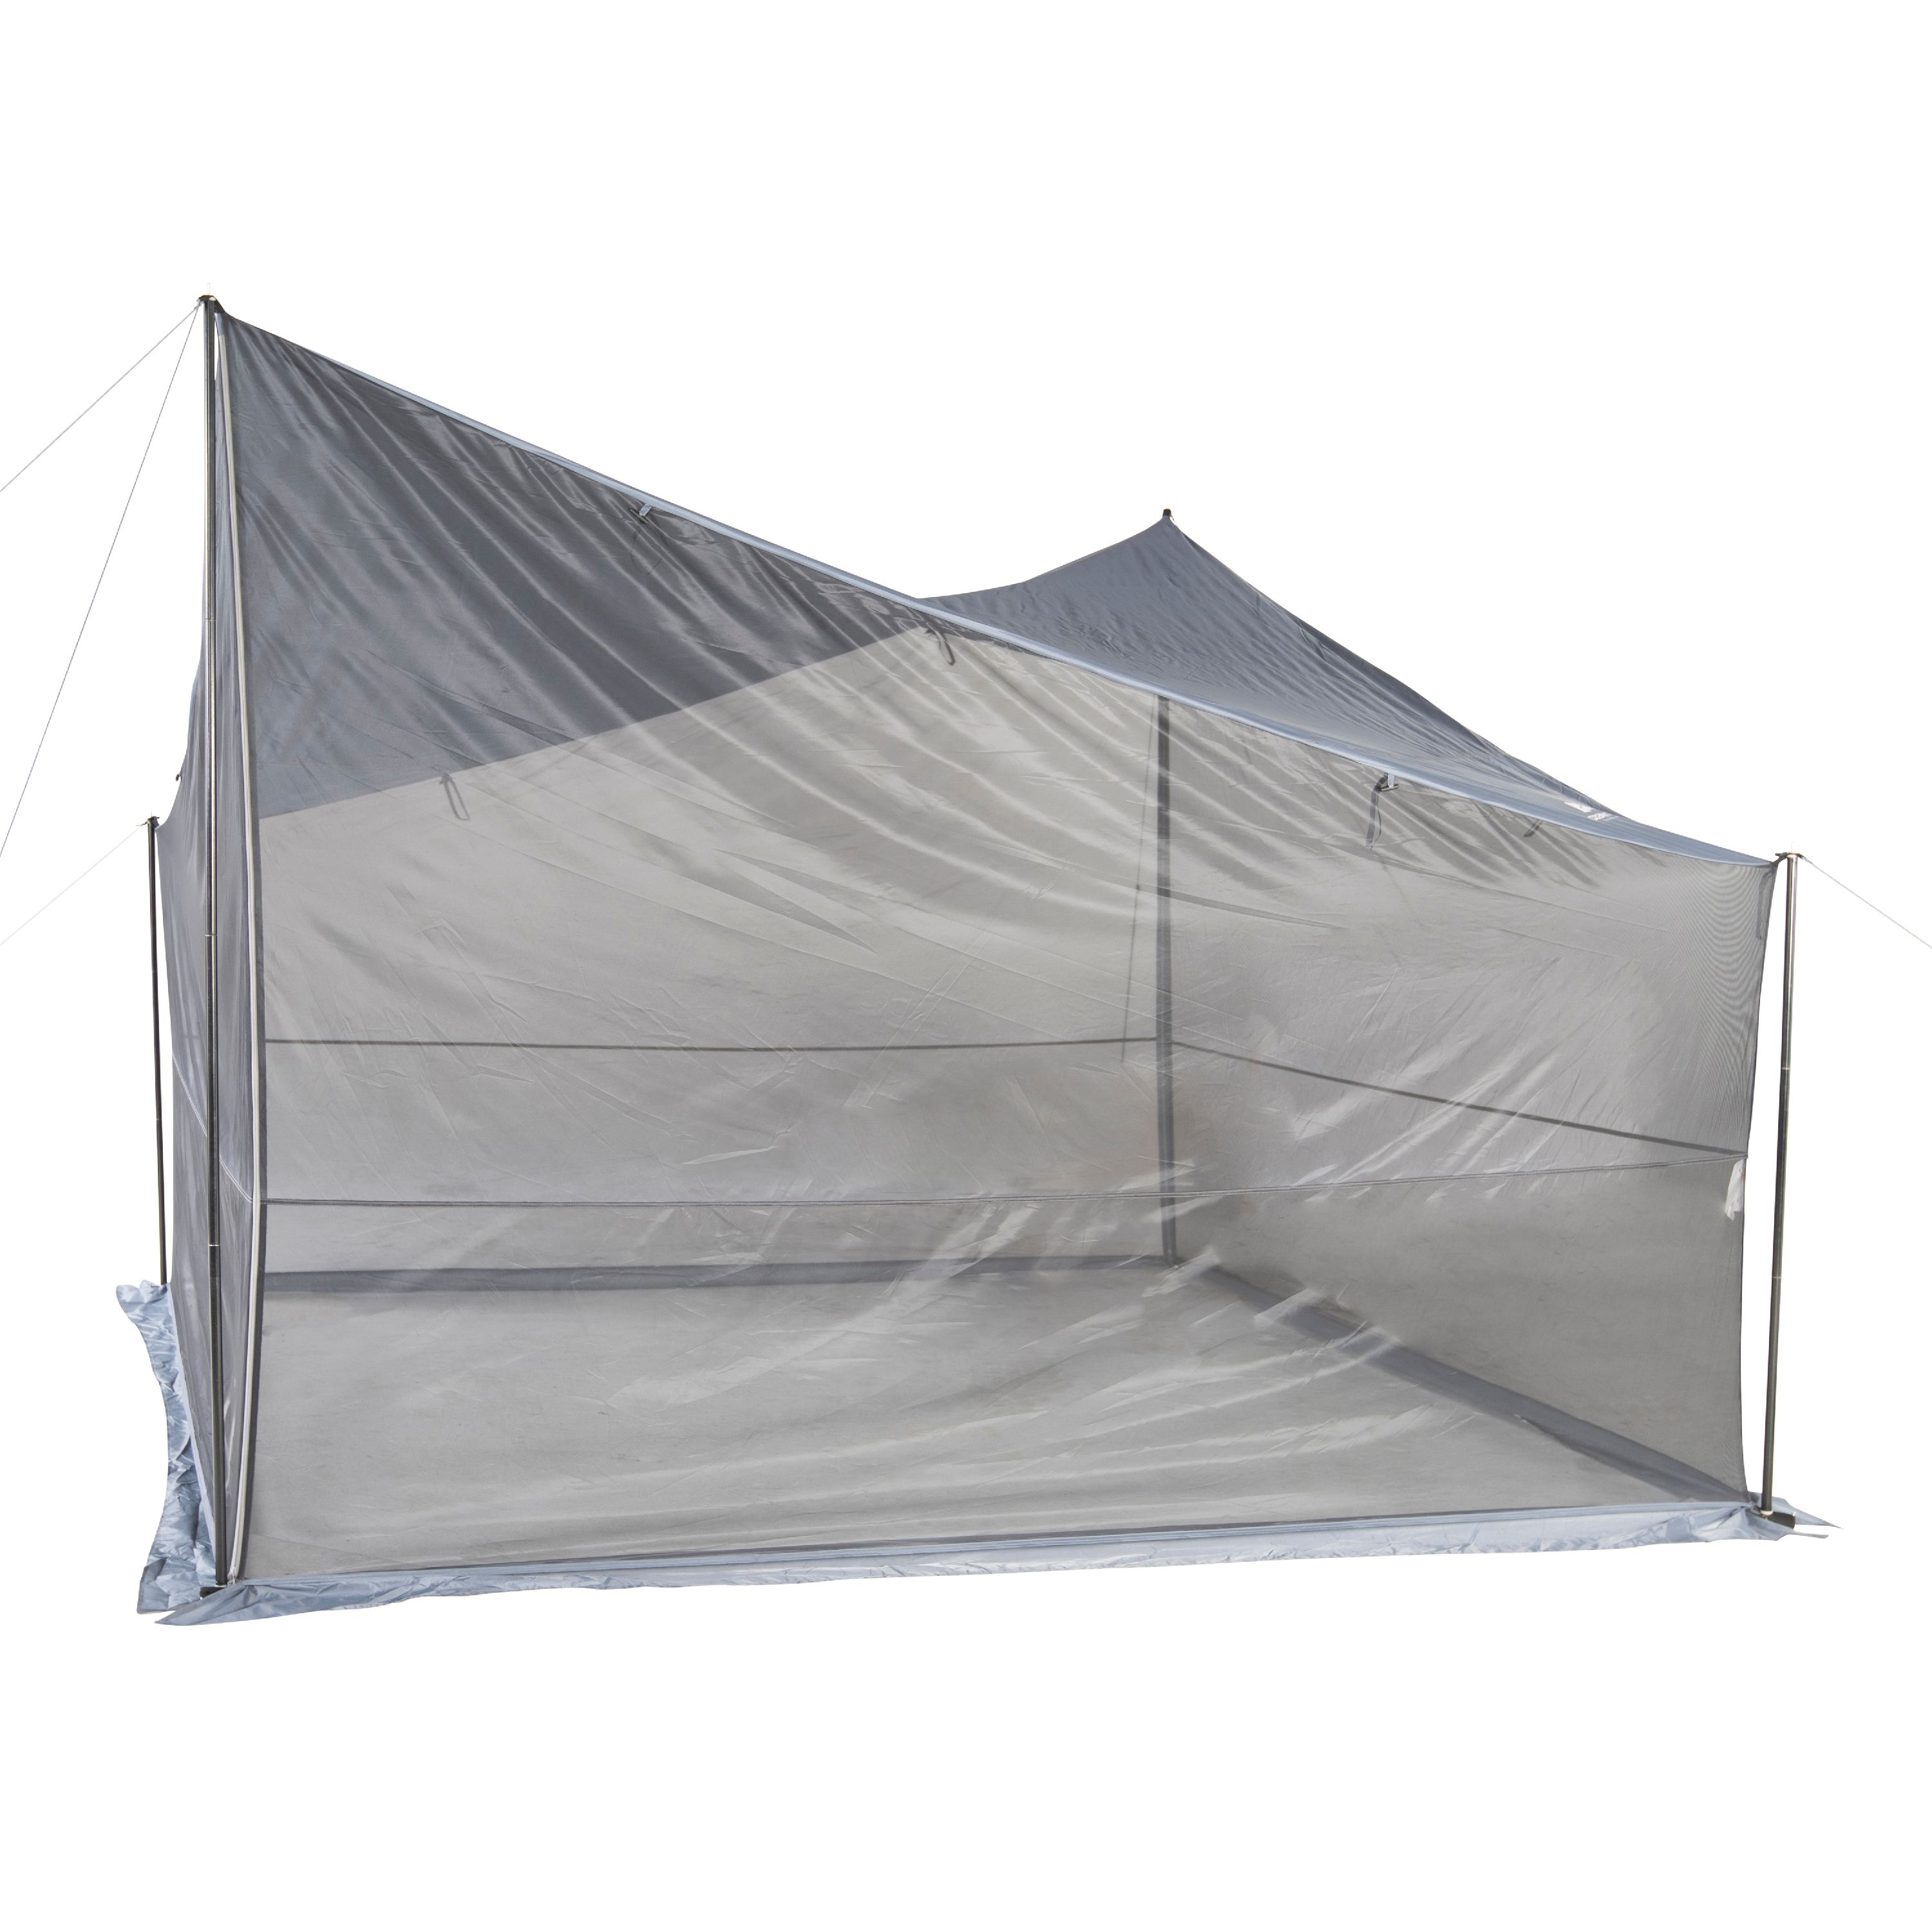 Ozark Trail Tarp Shelter with UV Protection and Roll-up Screen Walls - Walmart.com